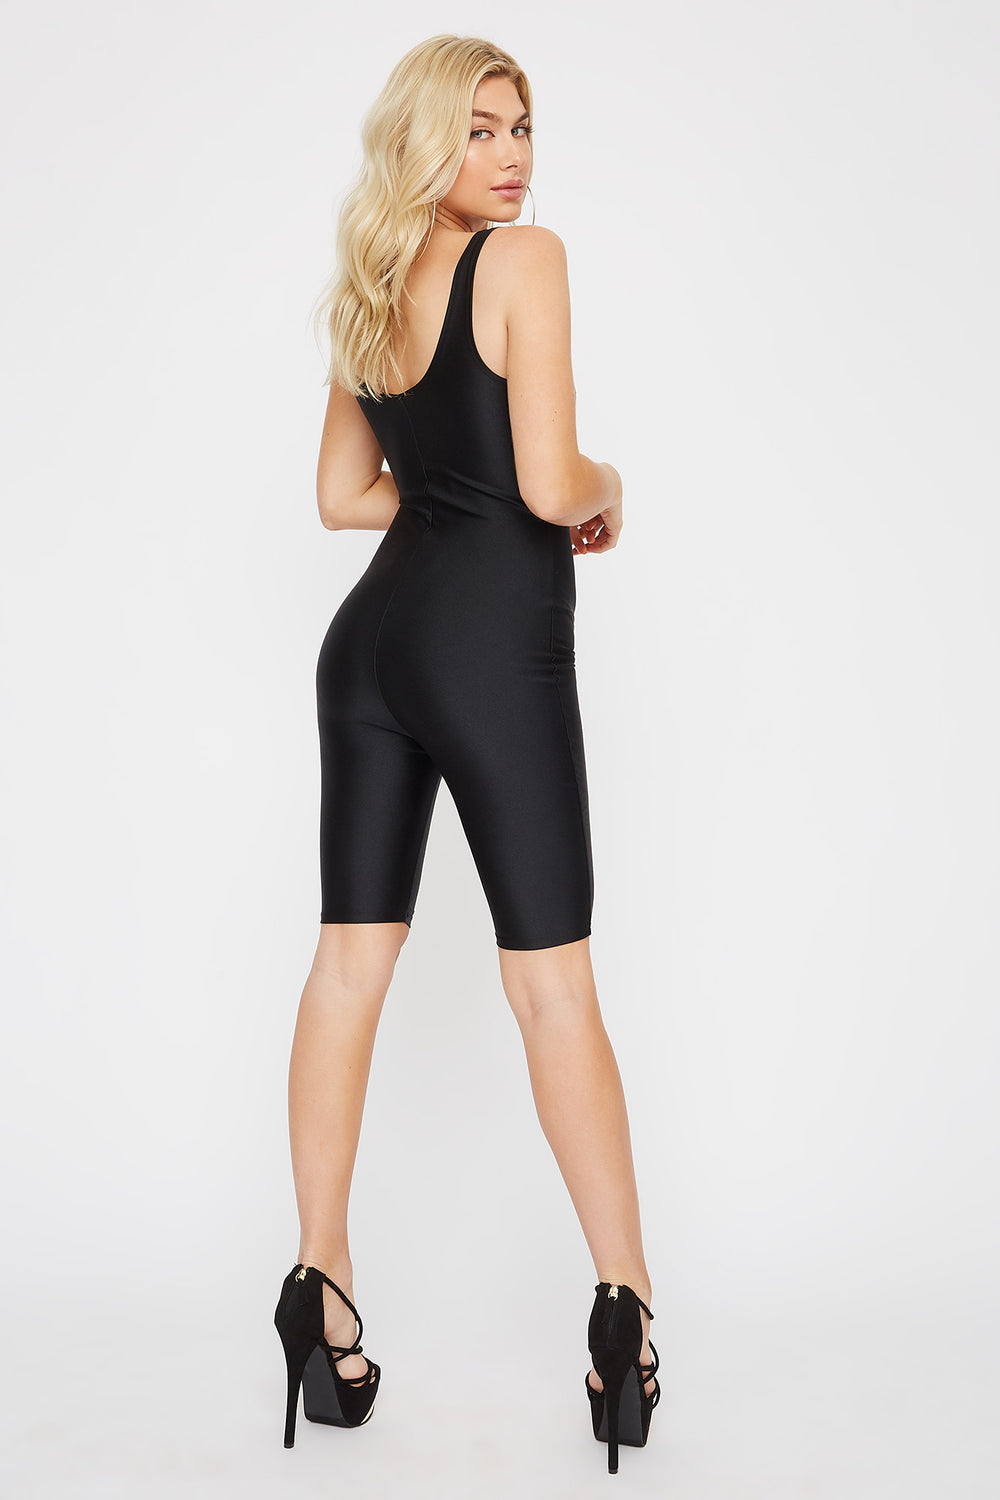 Crystal Scoop Neck Cut-Out Unitard Black